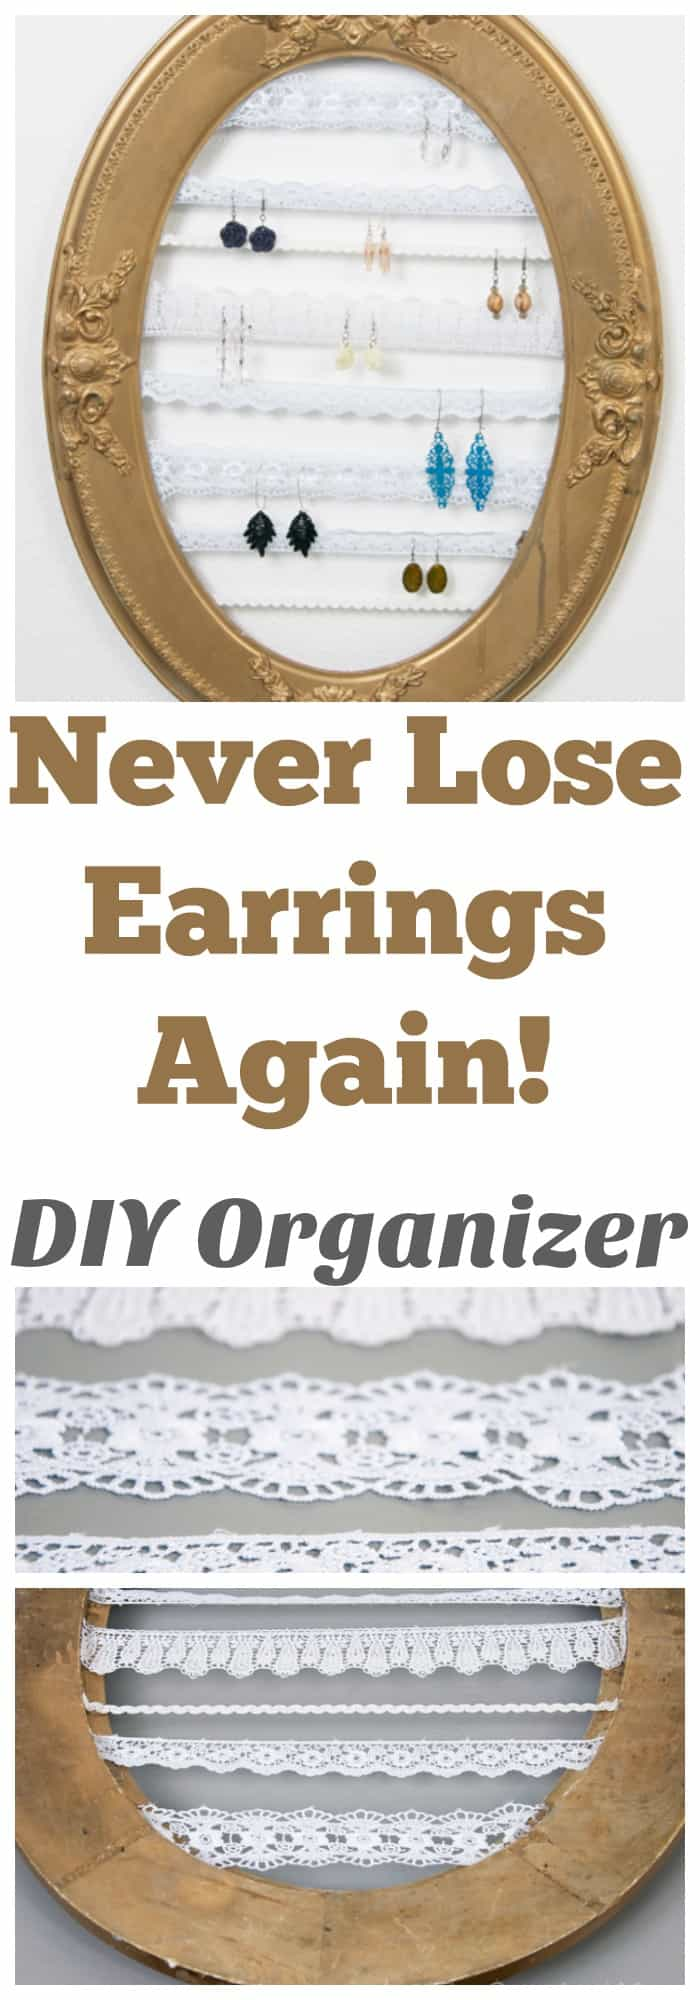 I love this earring organizer! It literally took $5 and 5 minutes!  DIY HOME ORGANIZATION - JEWELRY